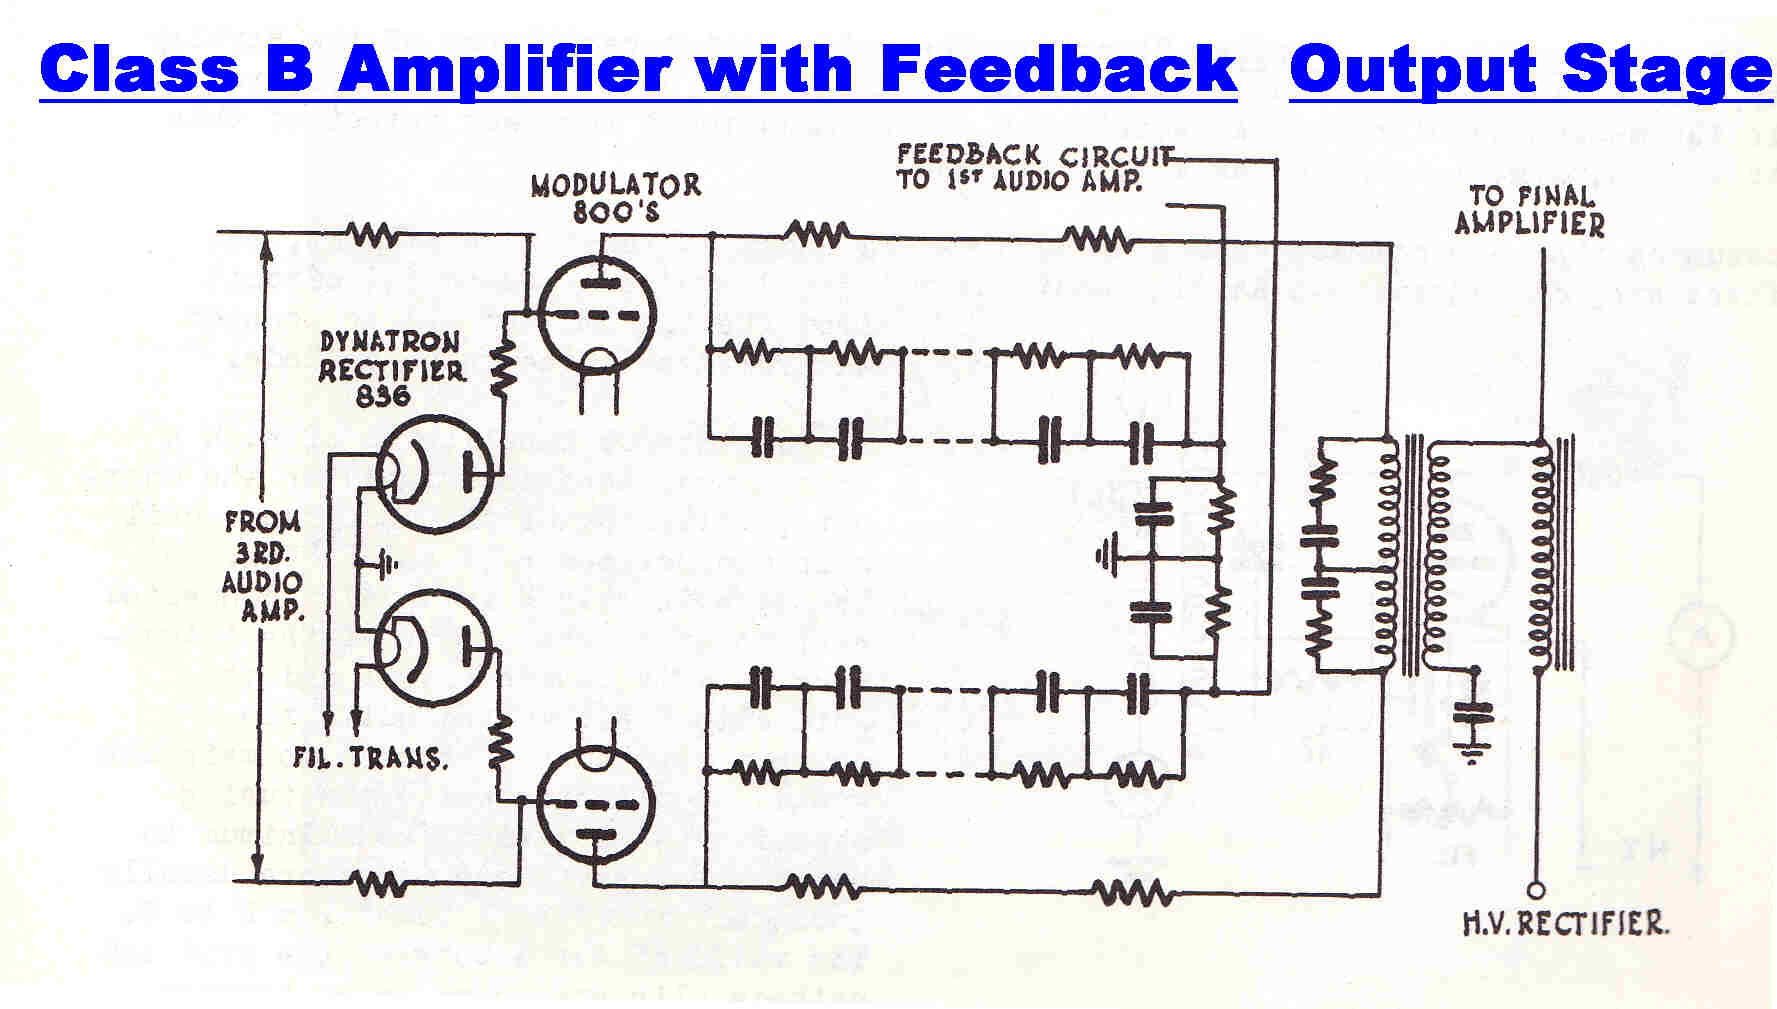 Amplitudemodulation Onetube Transmitter Schematic Diagrams And Circuit Descriptions The Of A Class B High Power Audio Amplifier Used For Level Plate Modulation In An Am Is Shown On Right